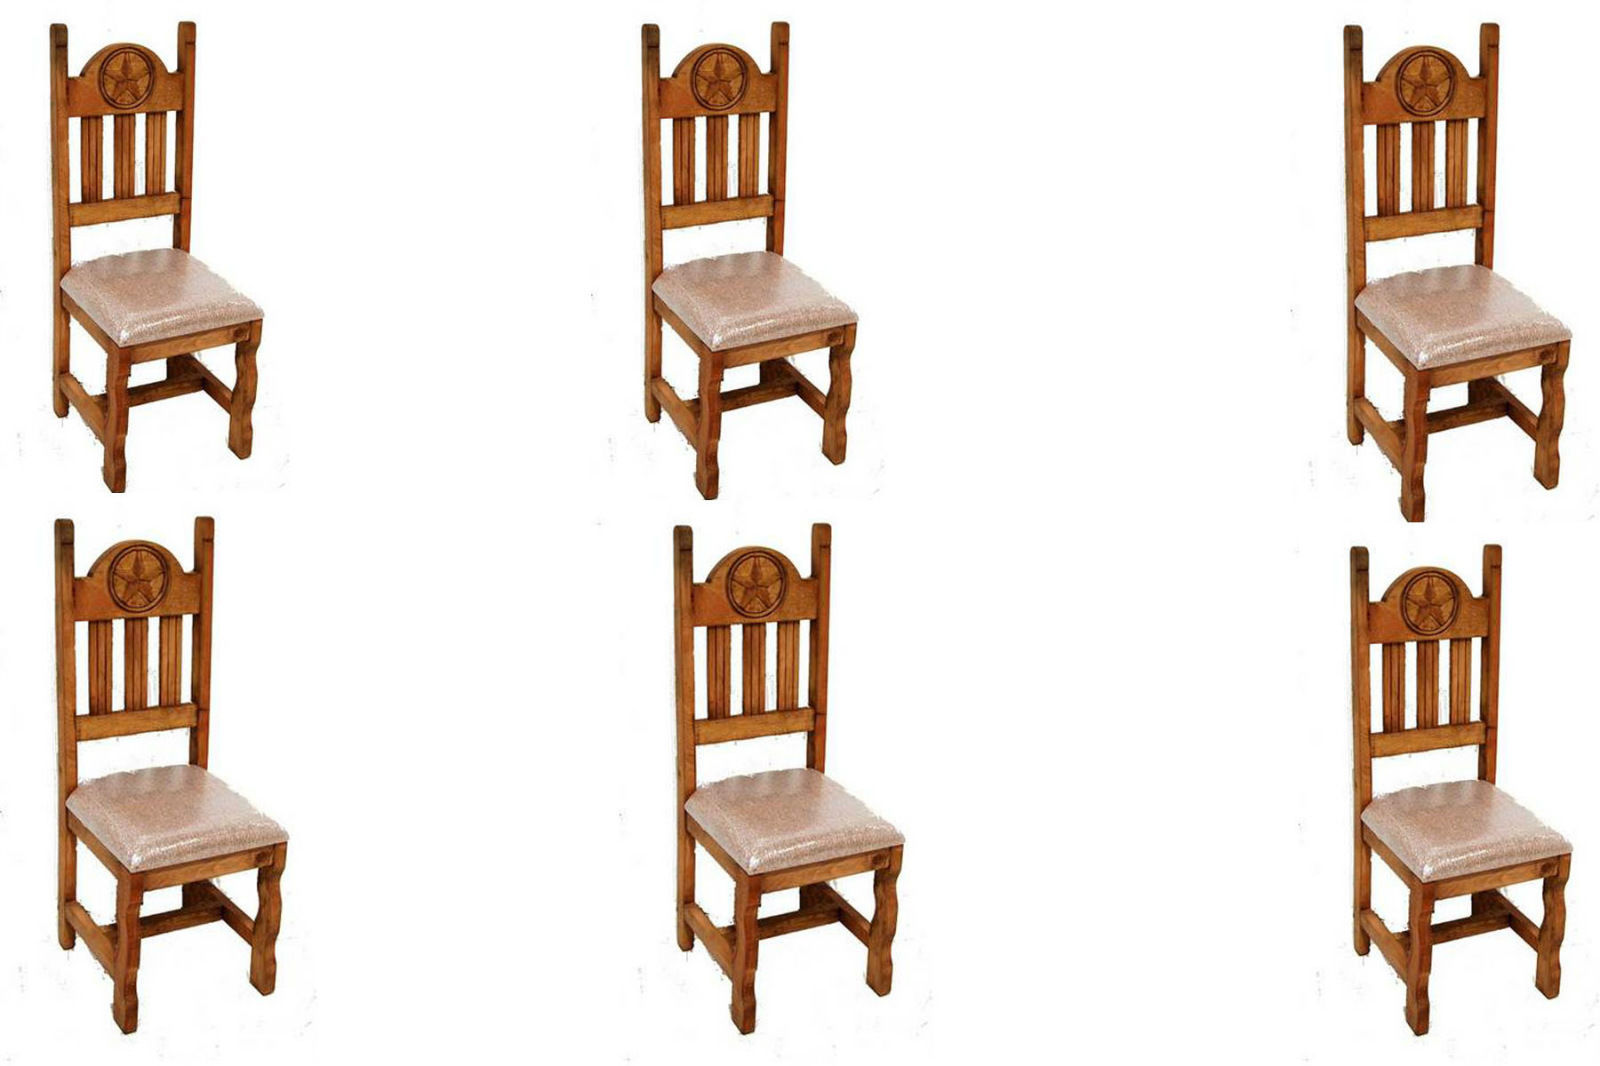 Set of Six Star Padded Seat Dining Chair Solid Wood Rustic Western Cabin Lodge